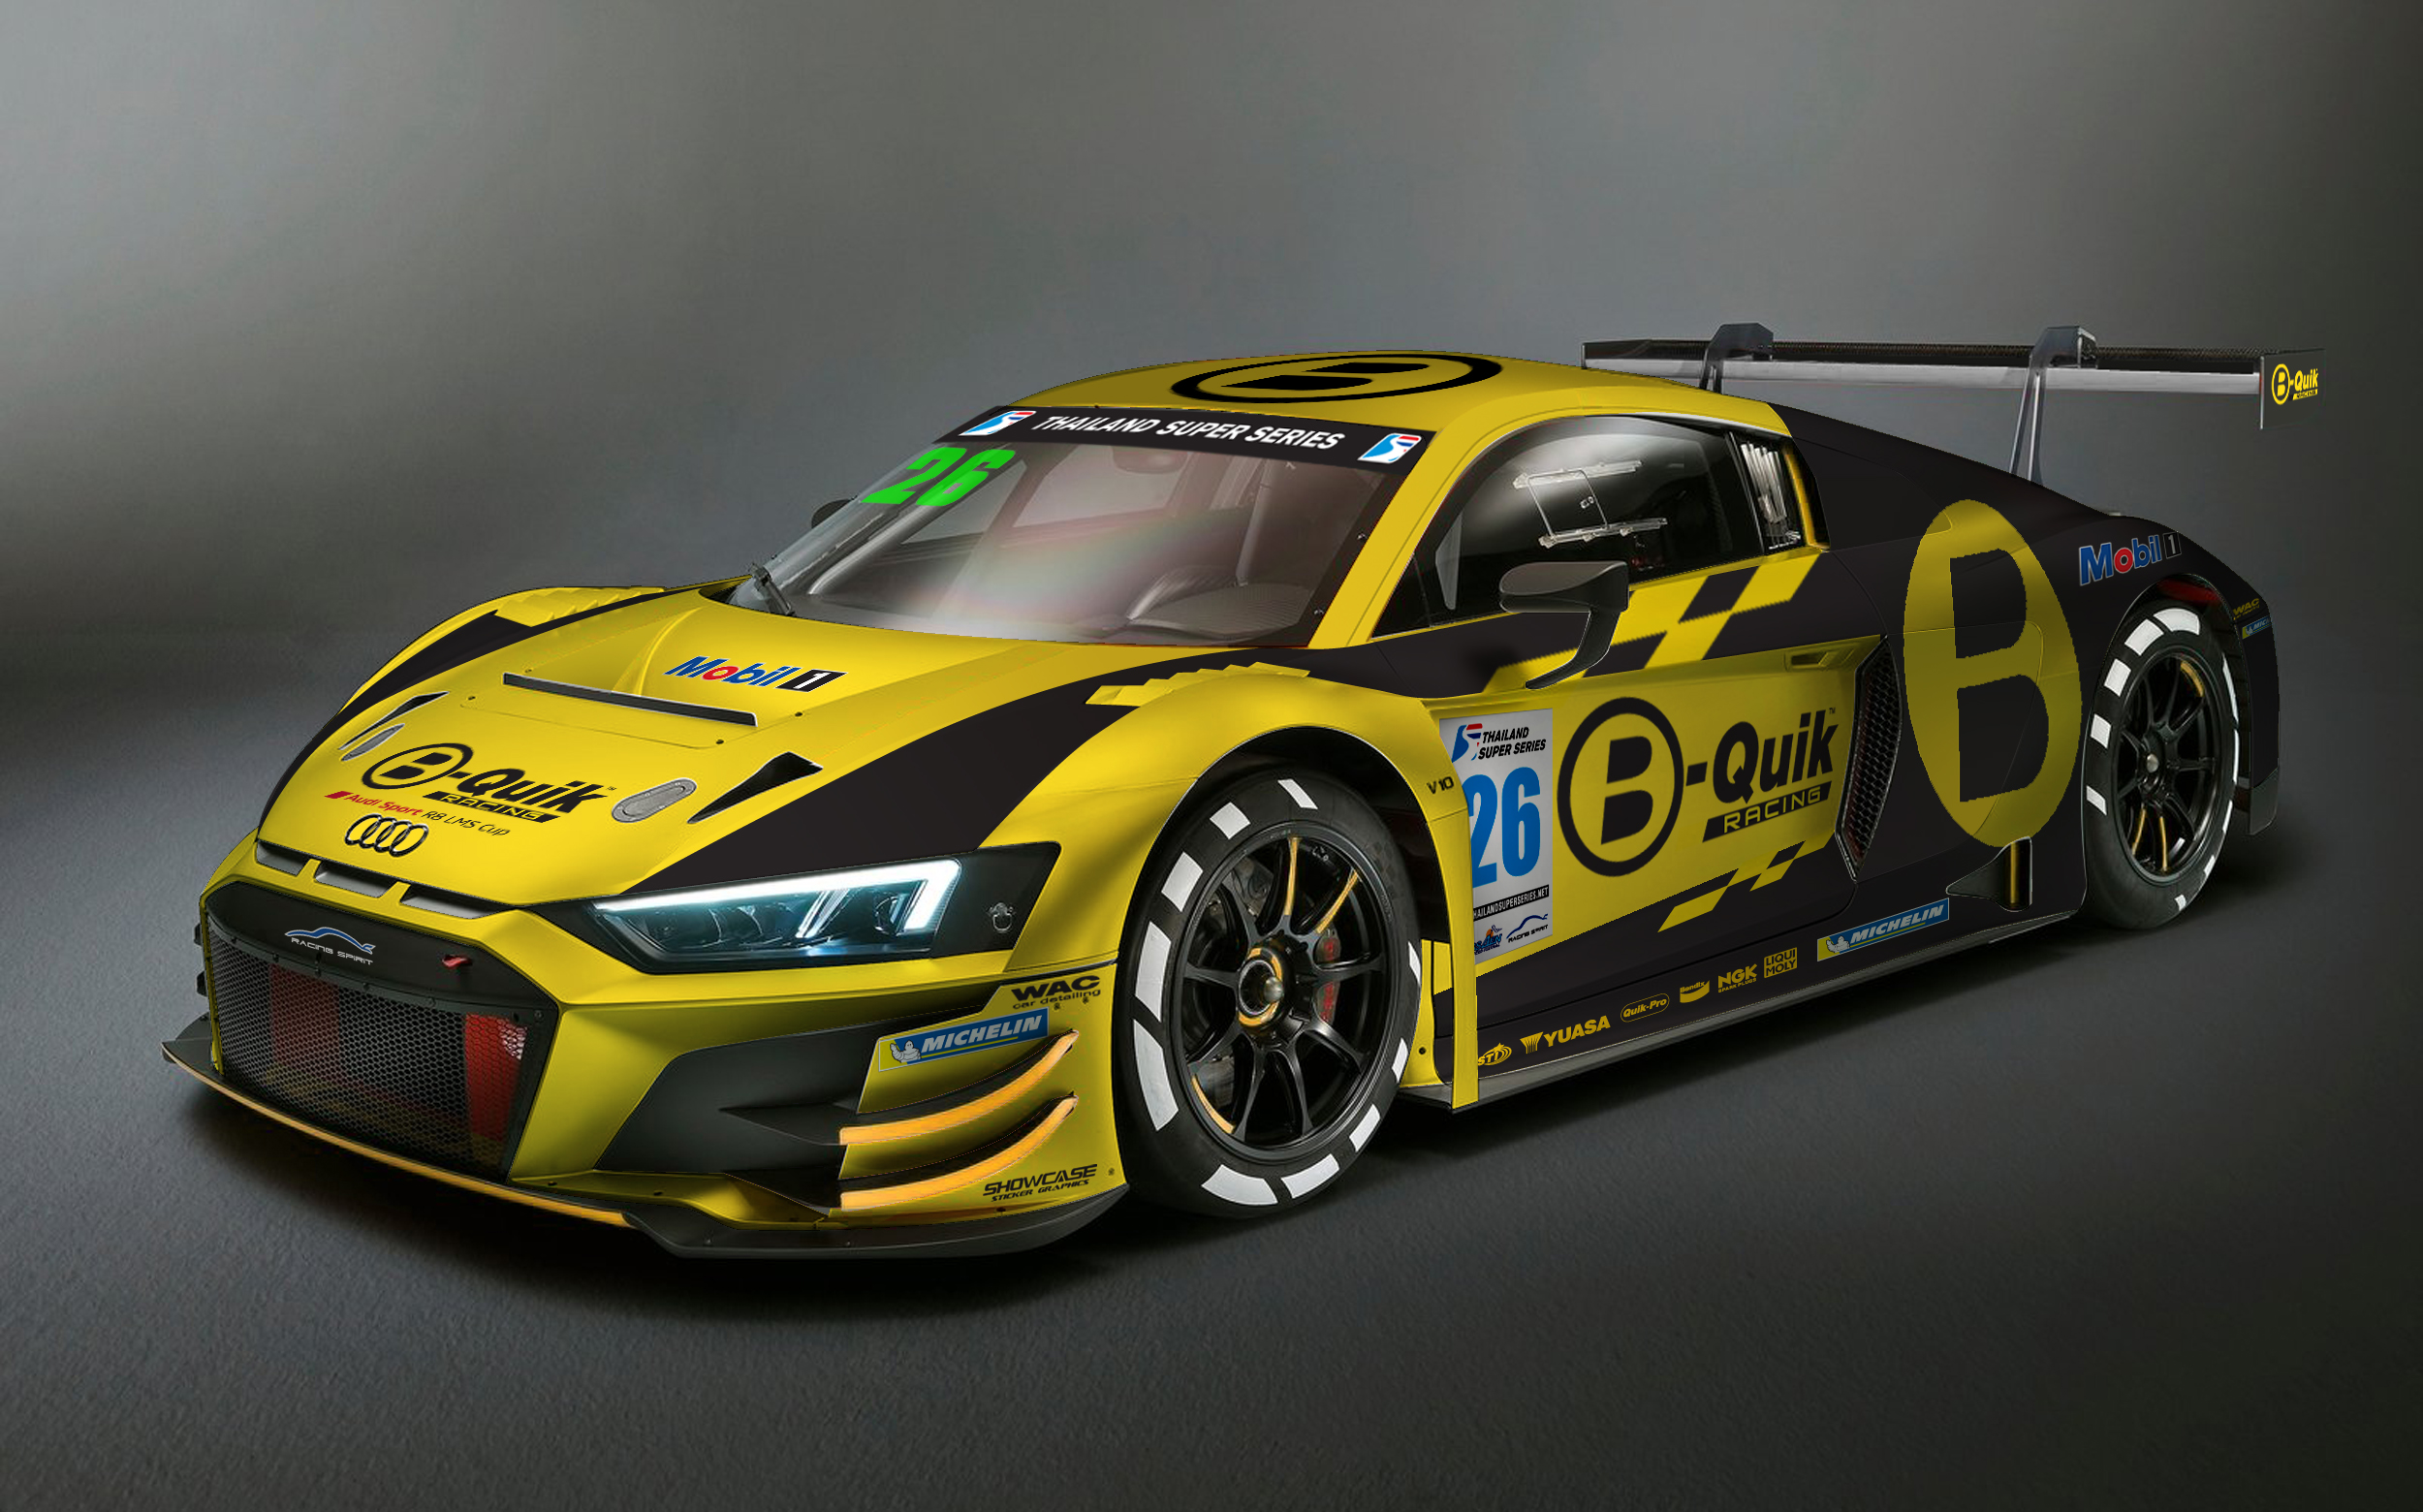 Two Audi Gt3 Entries For B Quik Racing In Thailand Super Series Endurance Info English Spoken